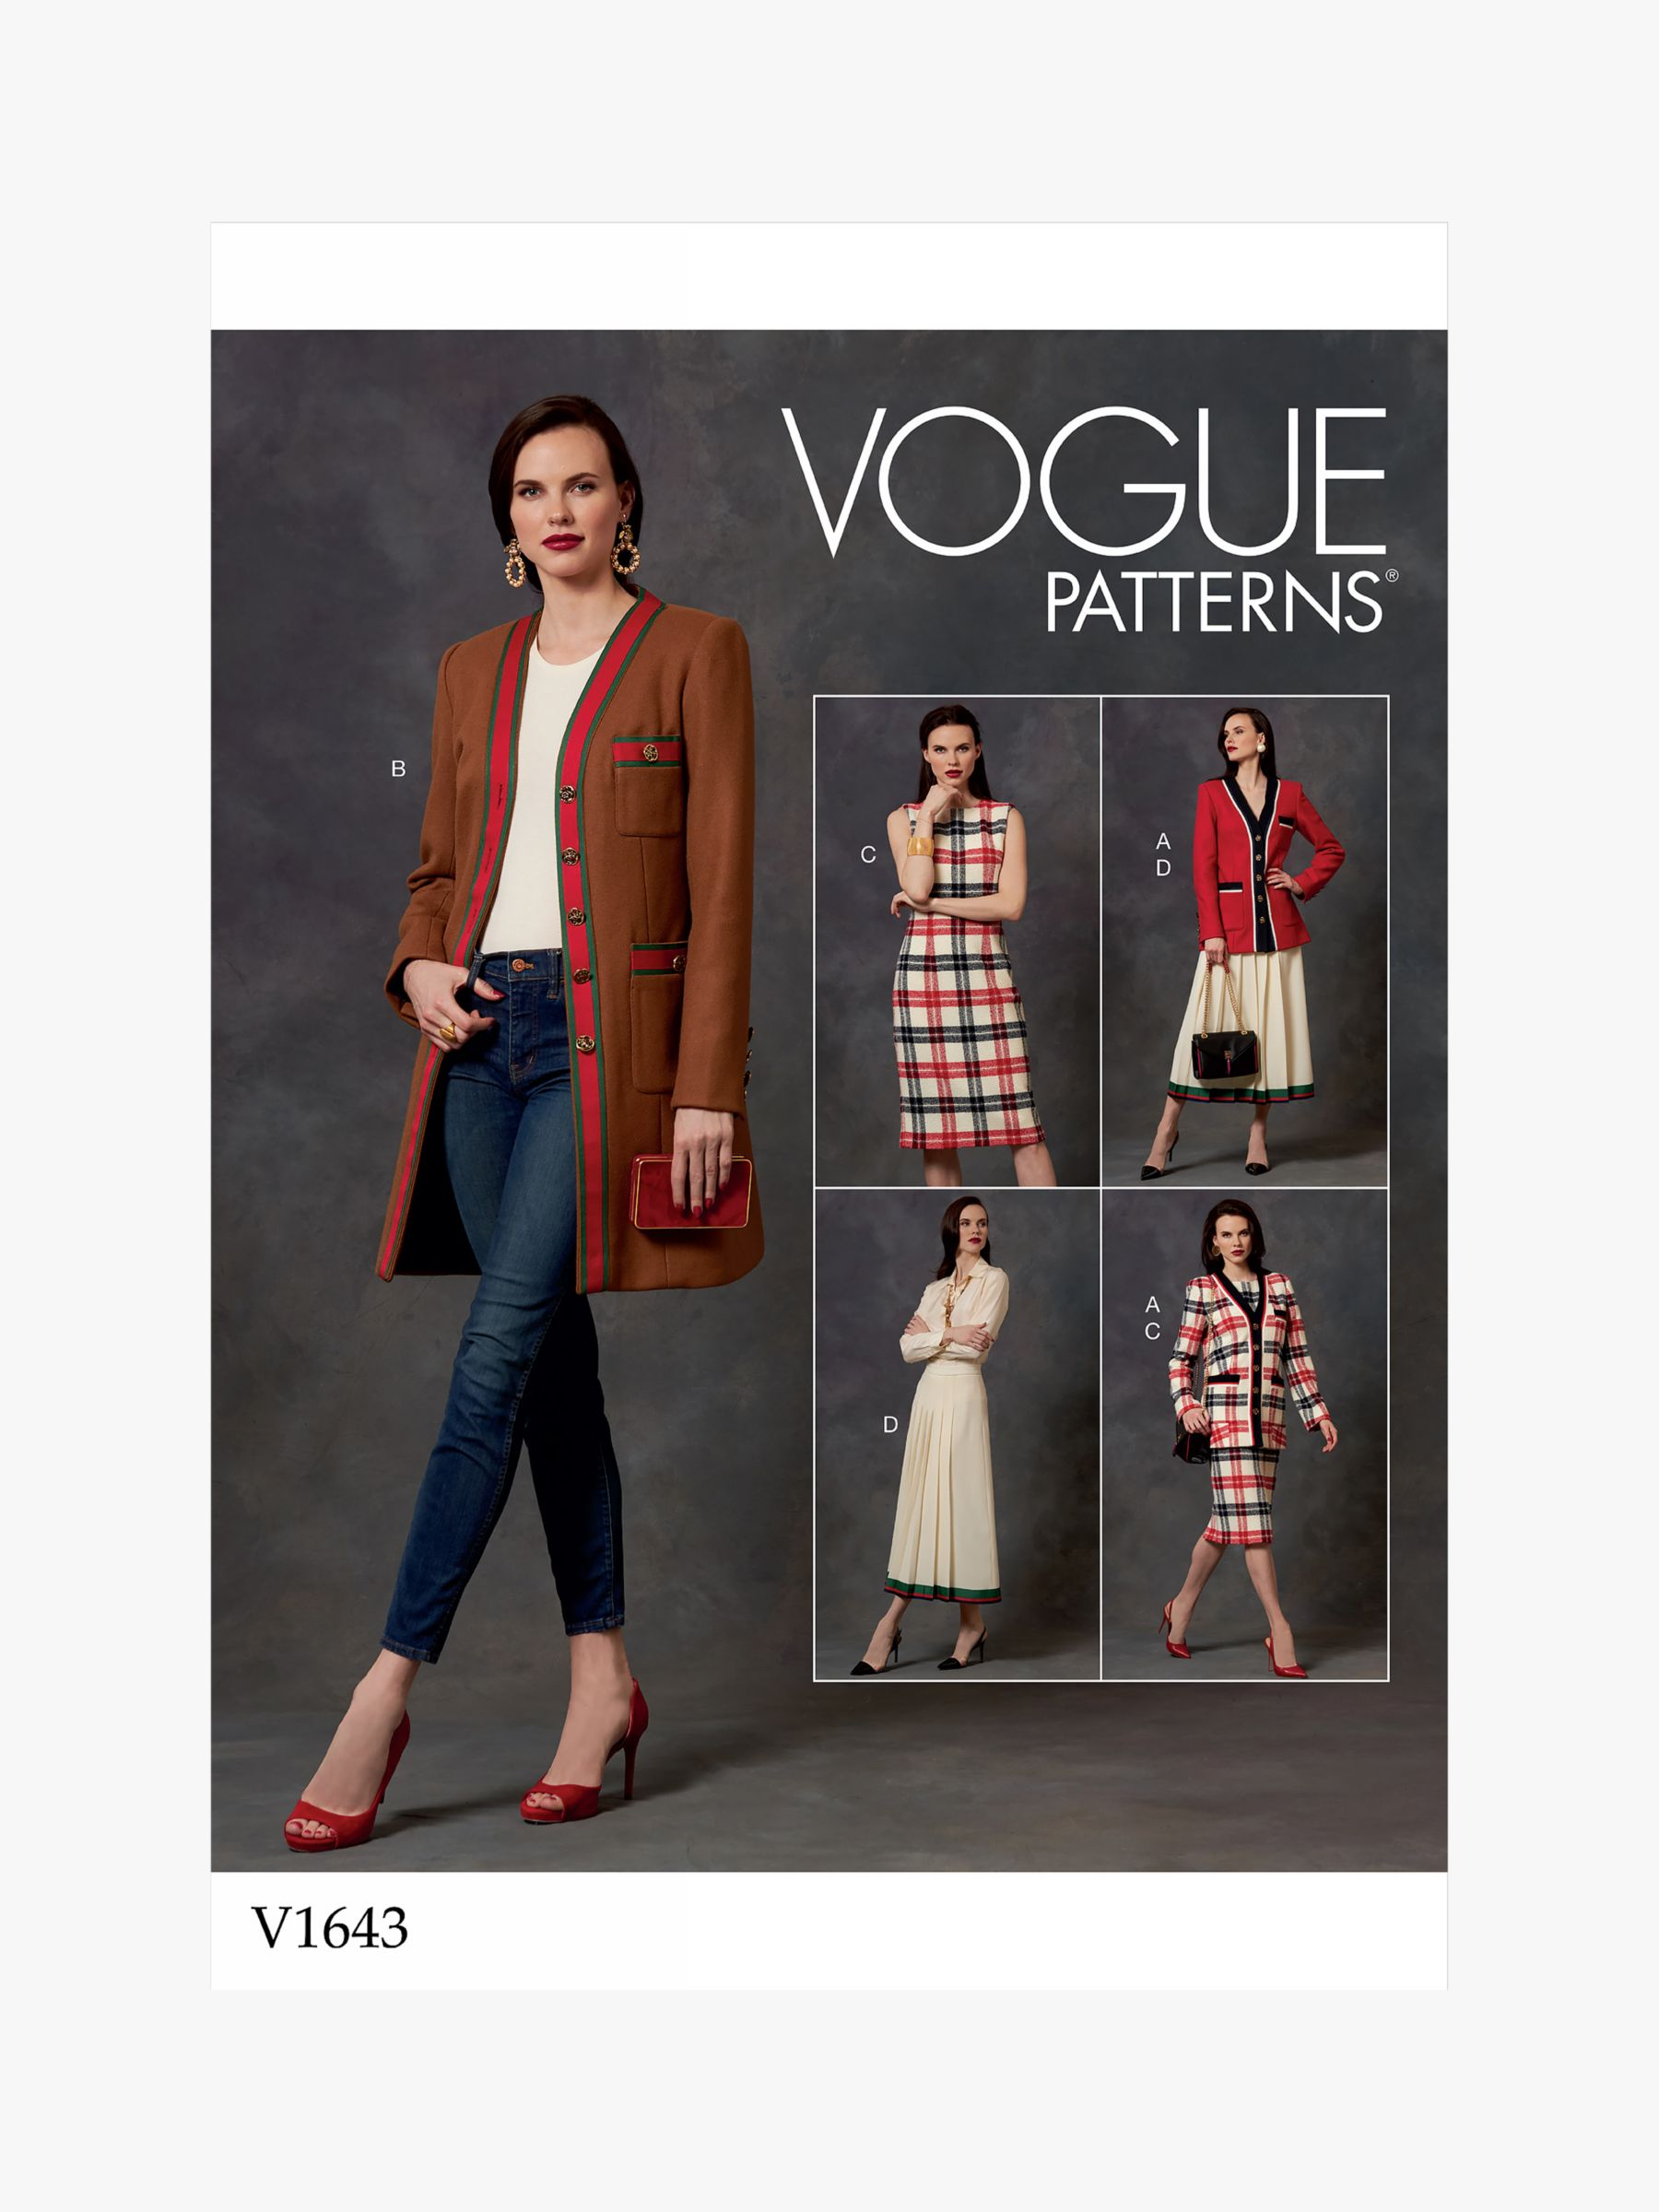 Vogue Vogue Women's Semi-Fitted Jacket, Dress and Skirt Sewing Pattern, 1643